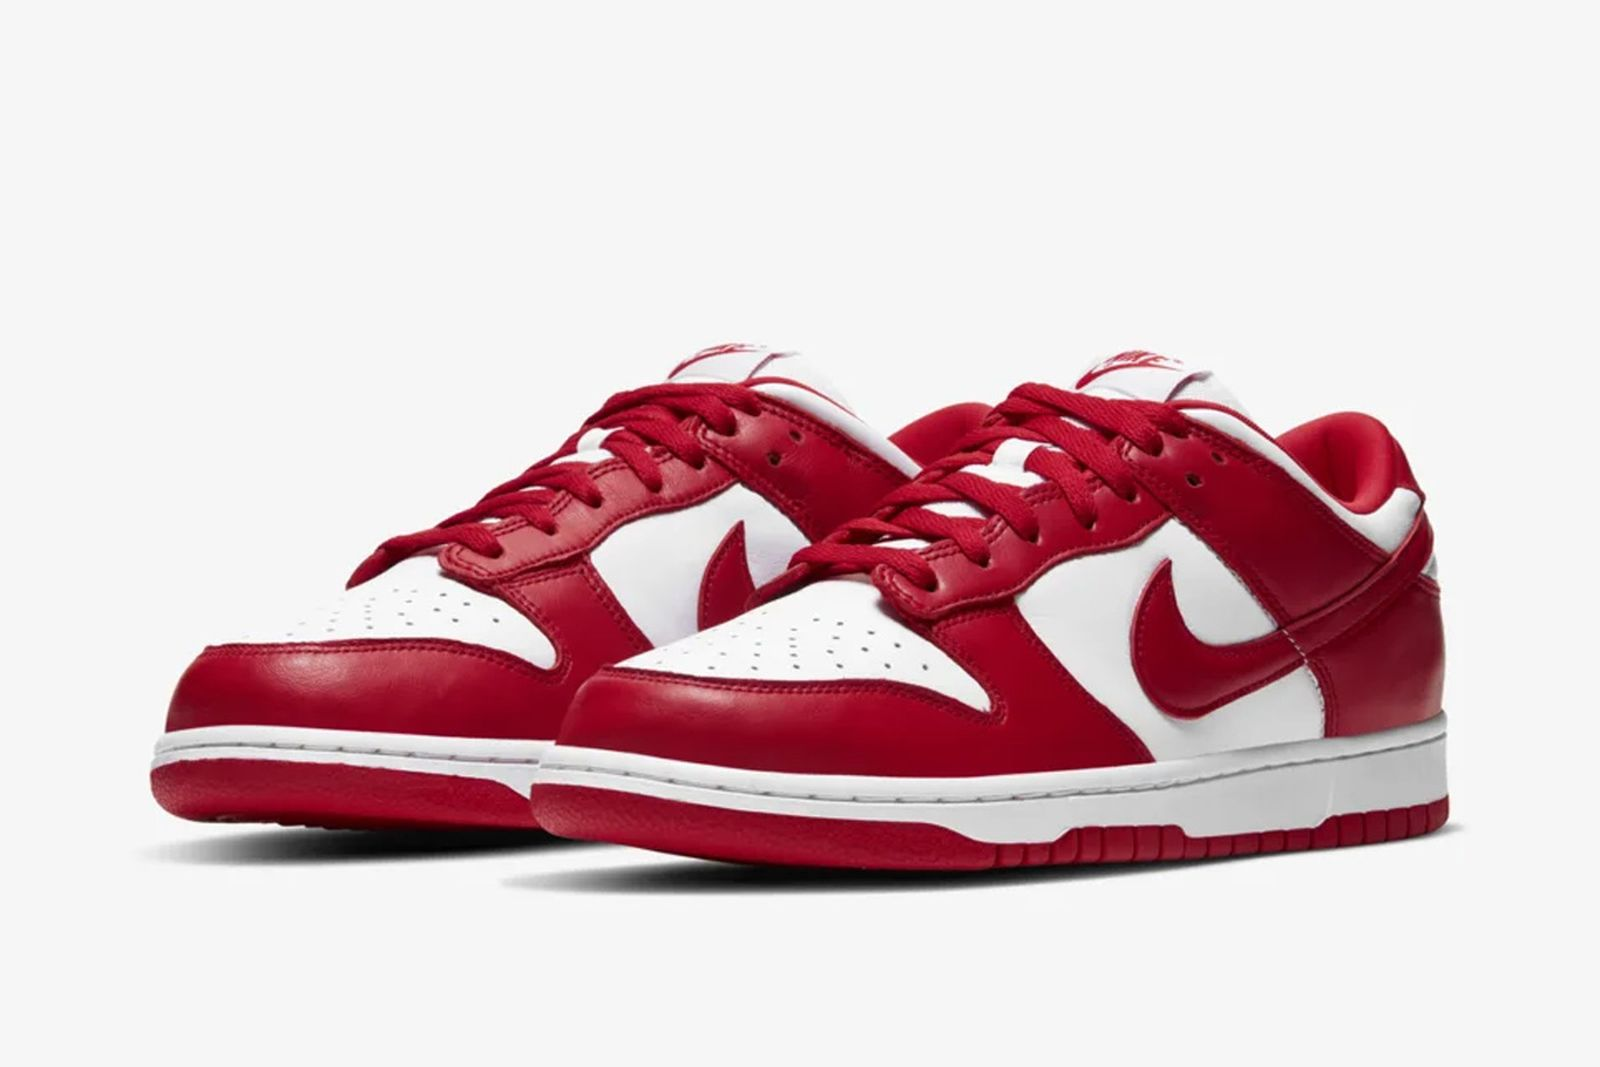 Red and white Nike Dunk Low side view both shoes